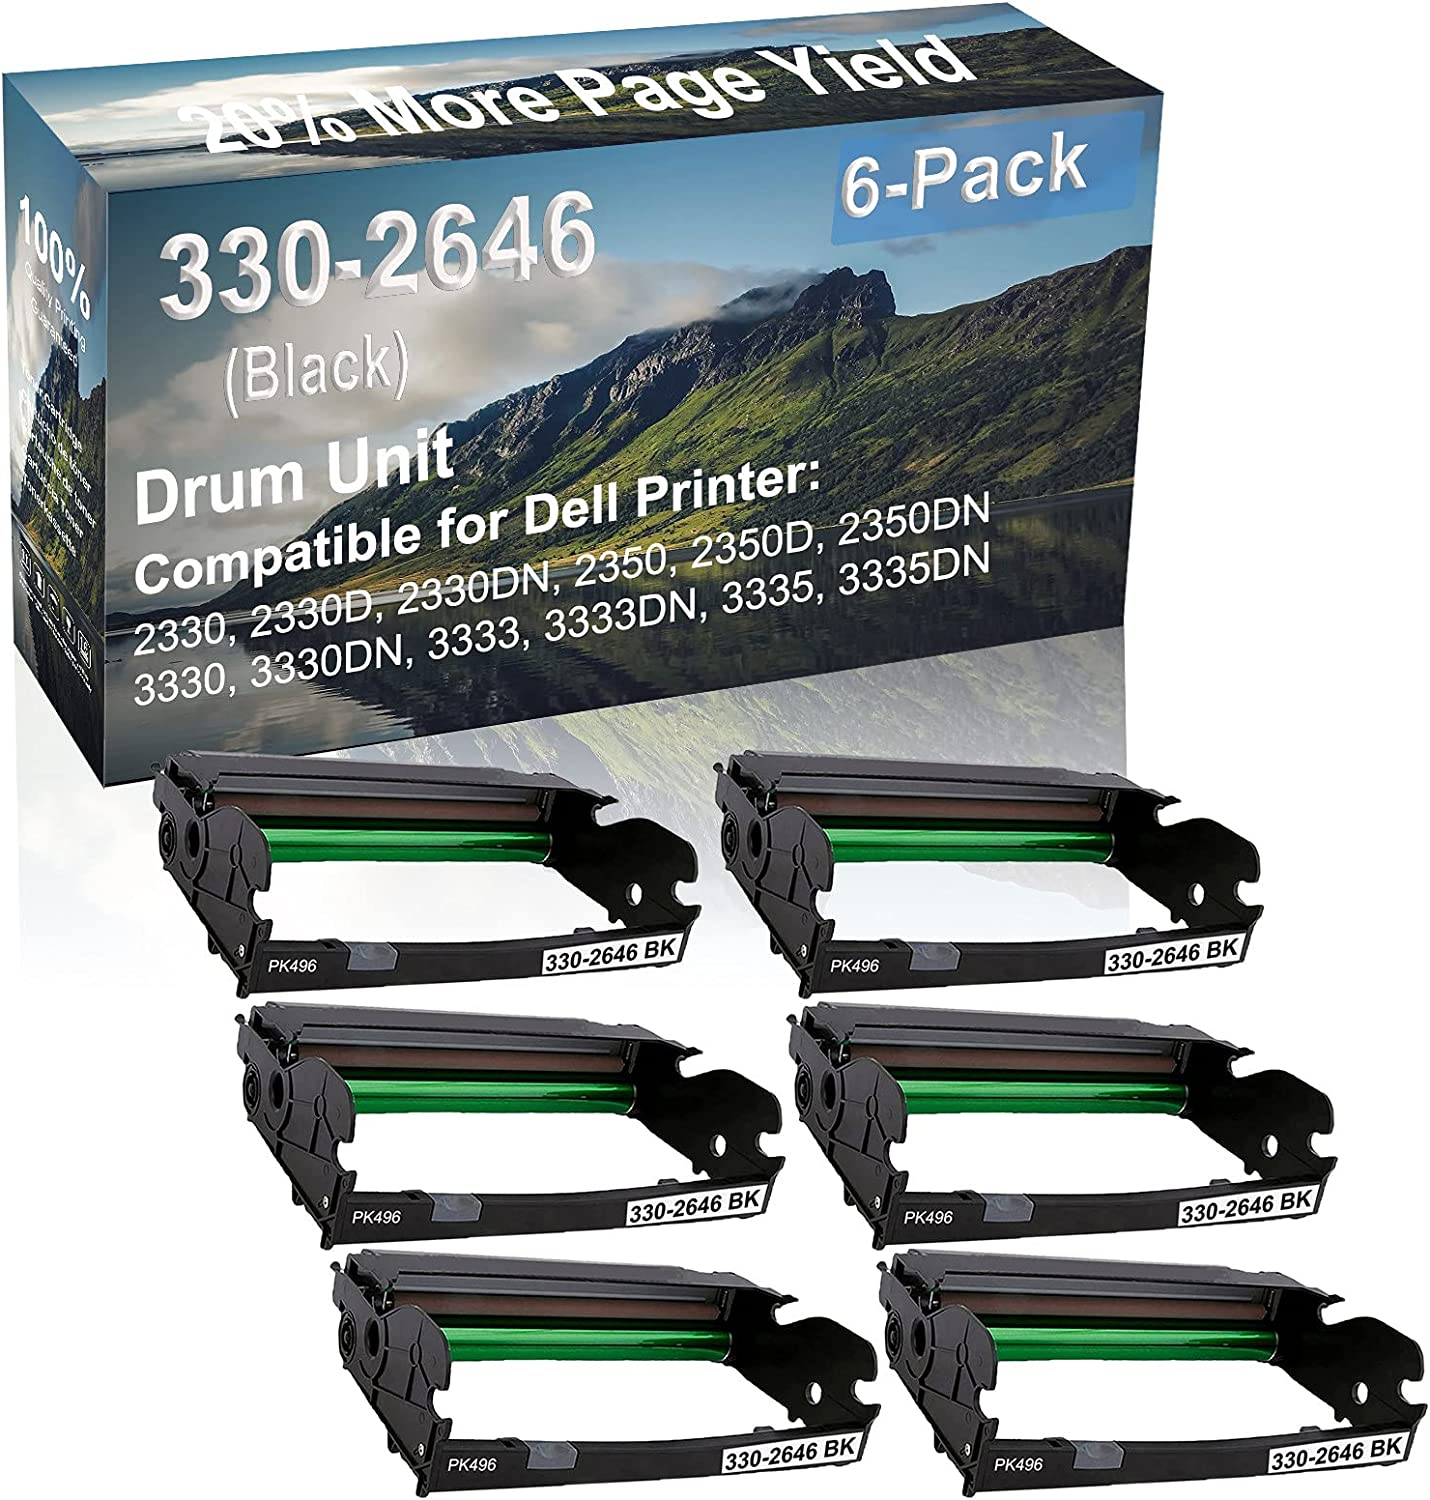 6-Pack Compatible 330-2646 Drum Kit use for Dell 2330, 2330D, 2330DN, 2350 Printer (Black)